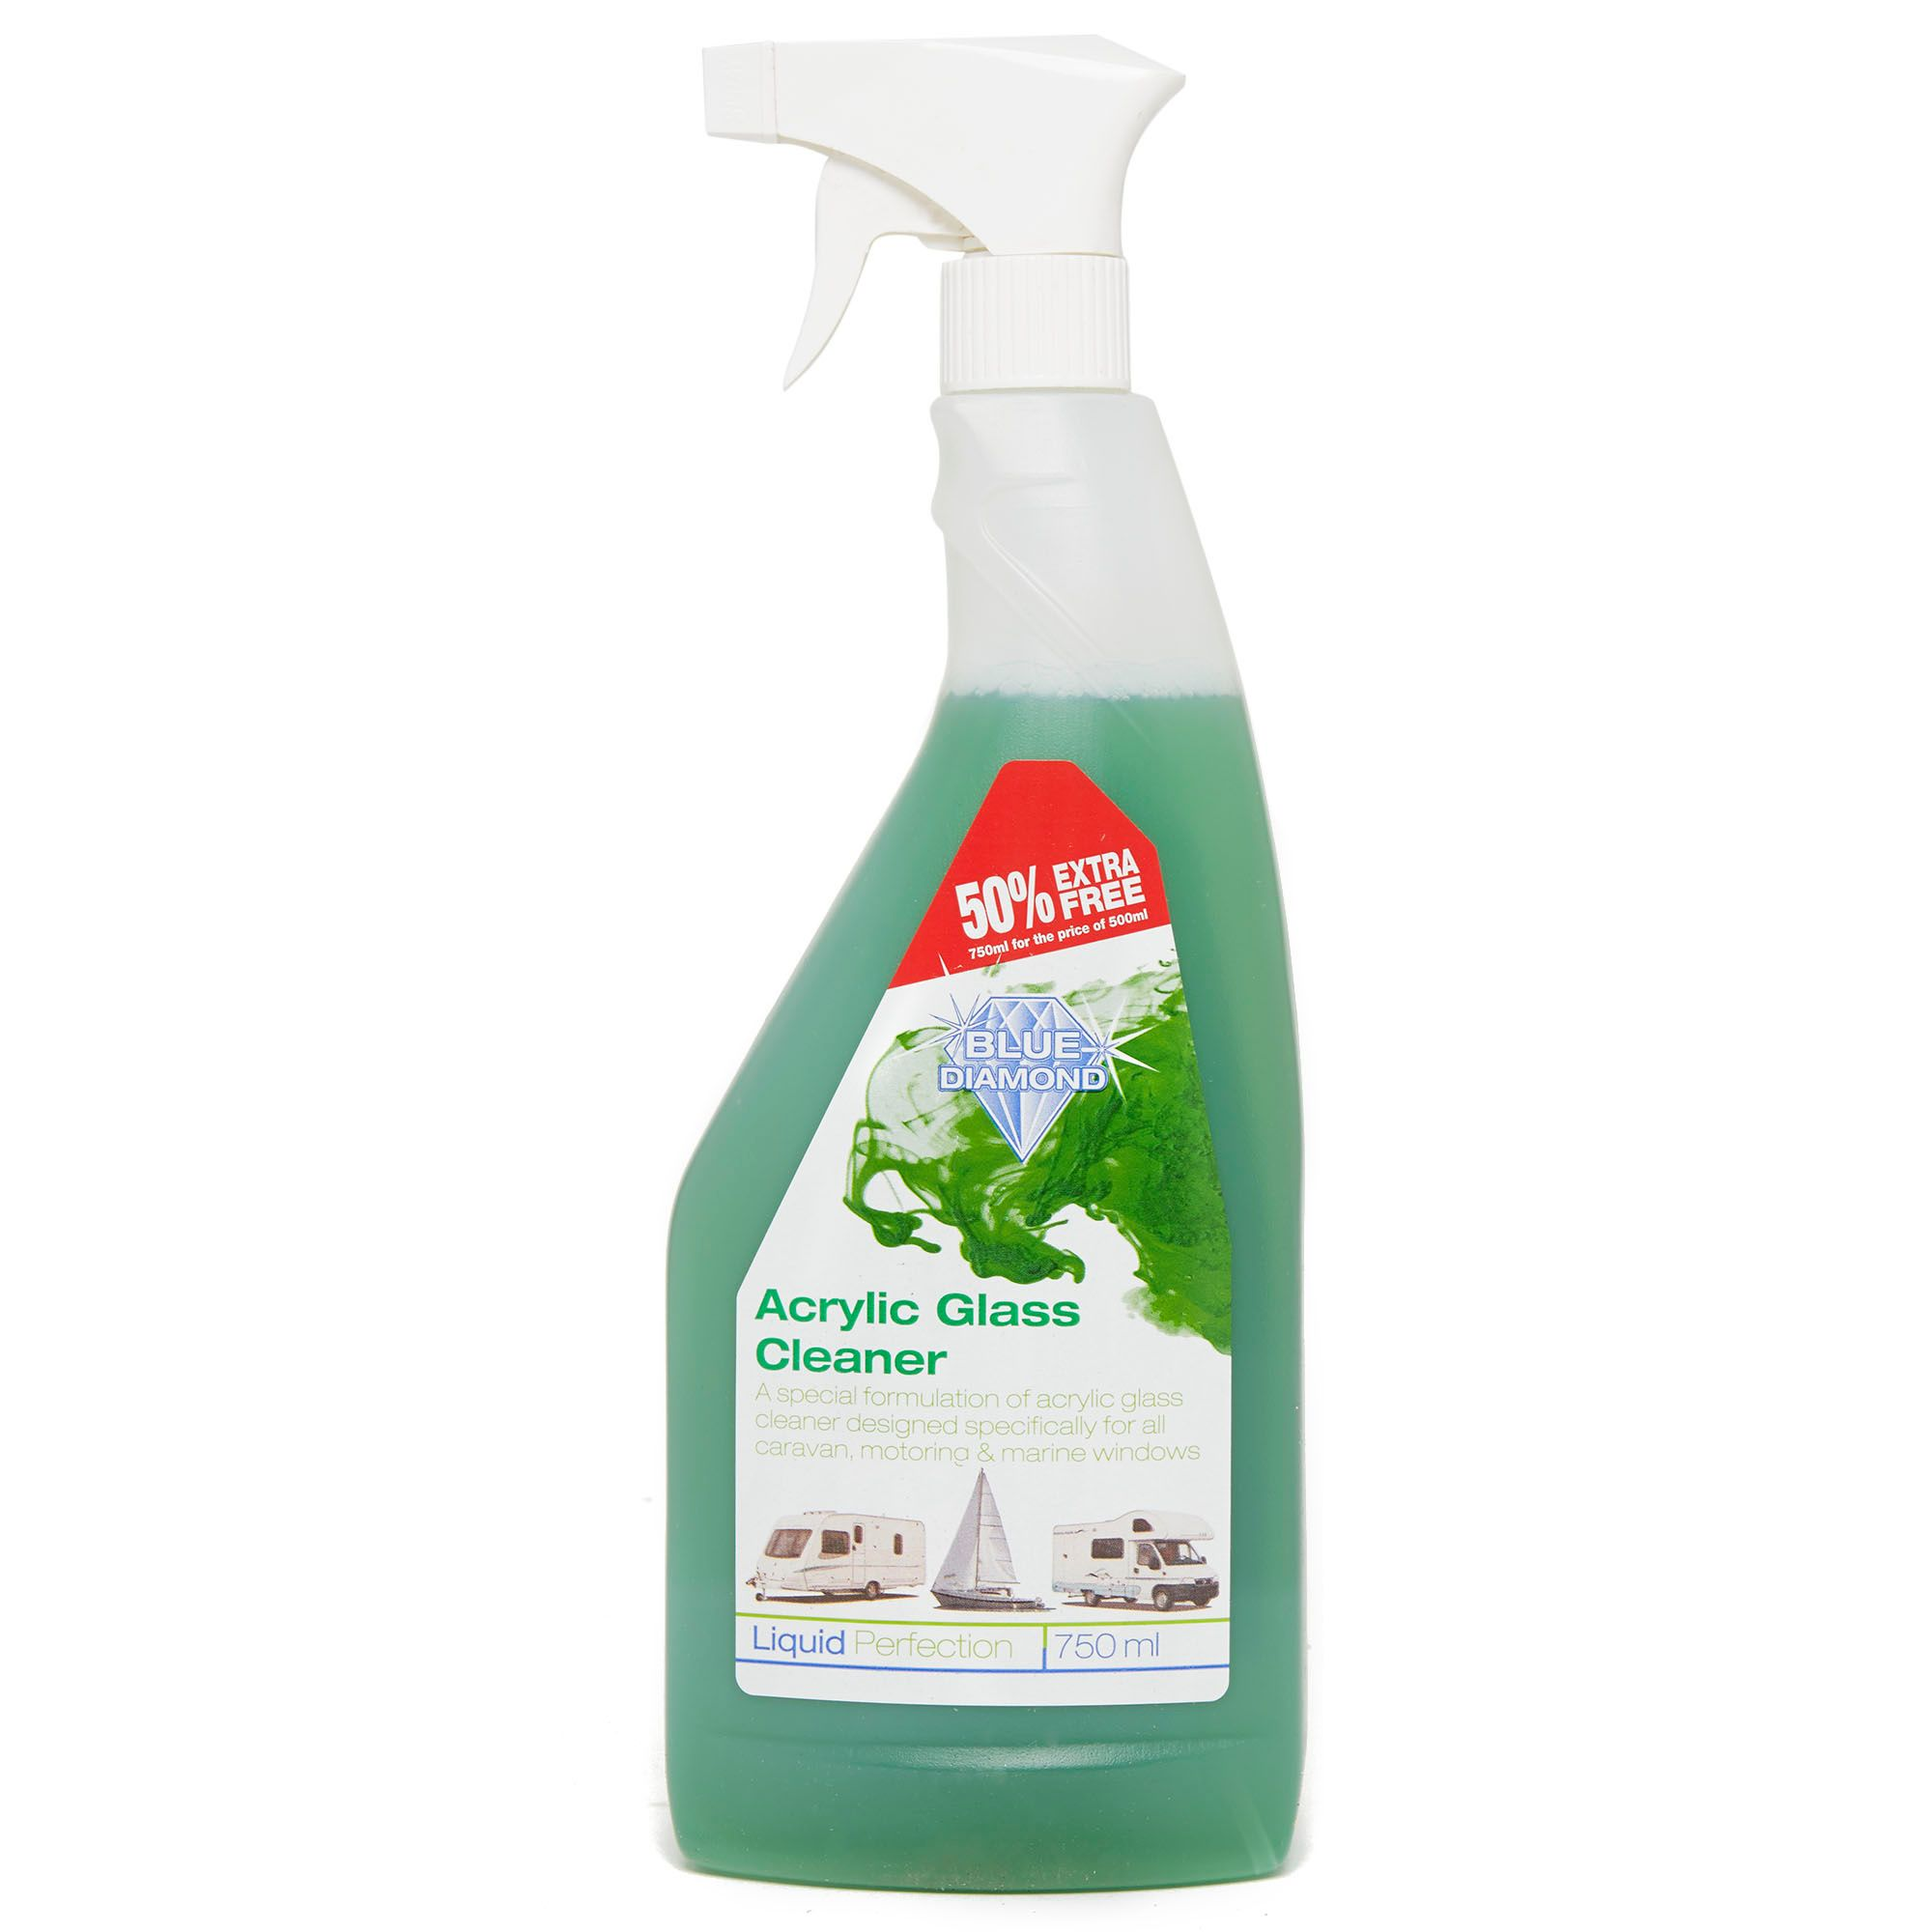 BLUE DIAMOND Acrylic Glass Cleaner 750ml